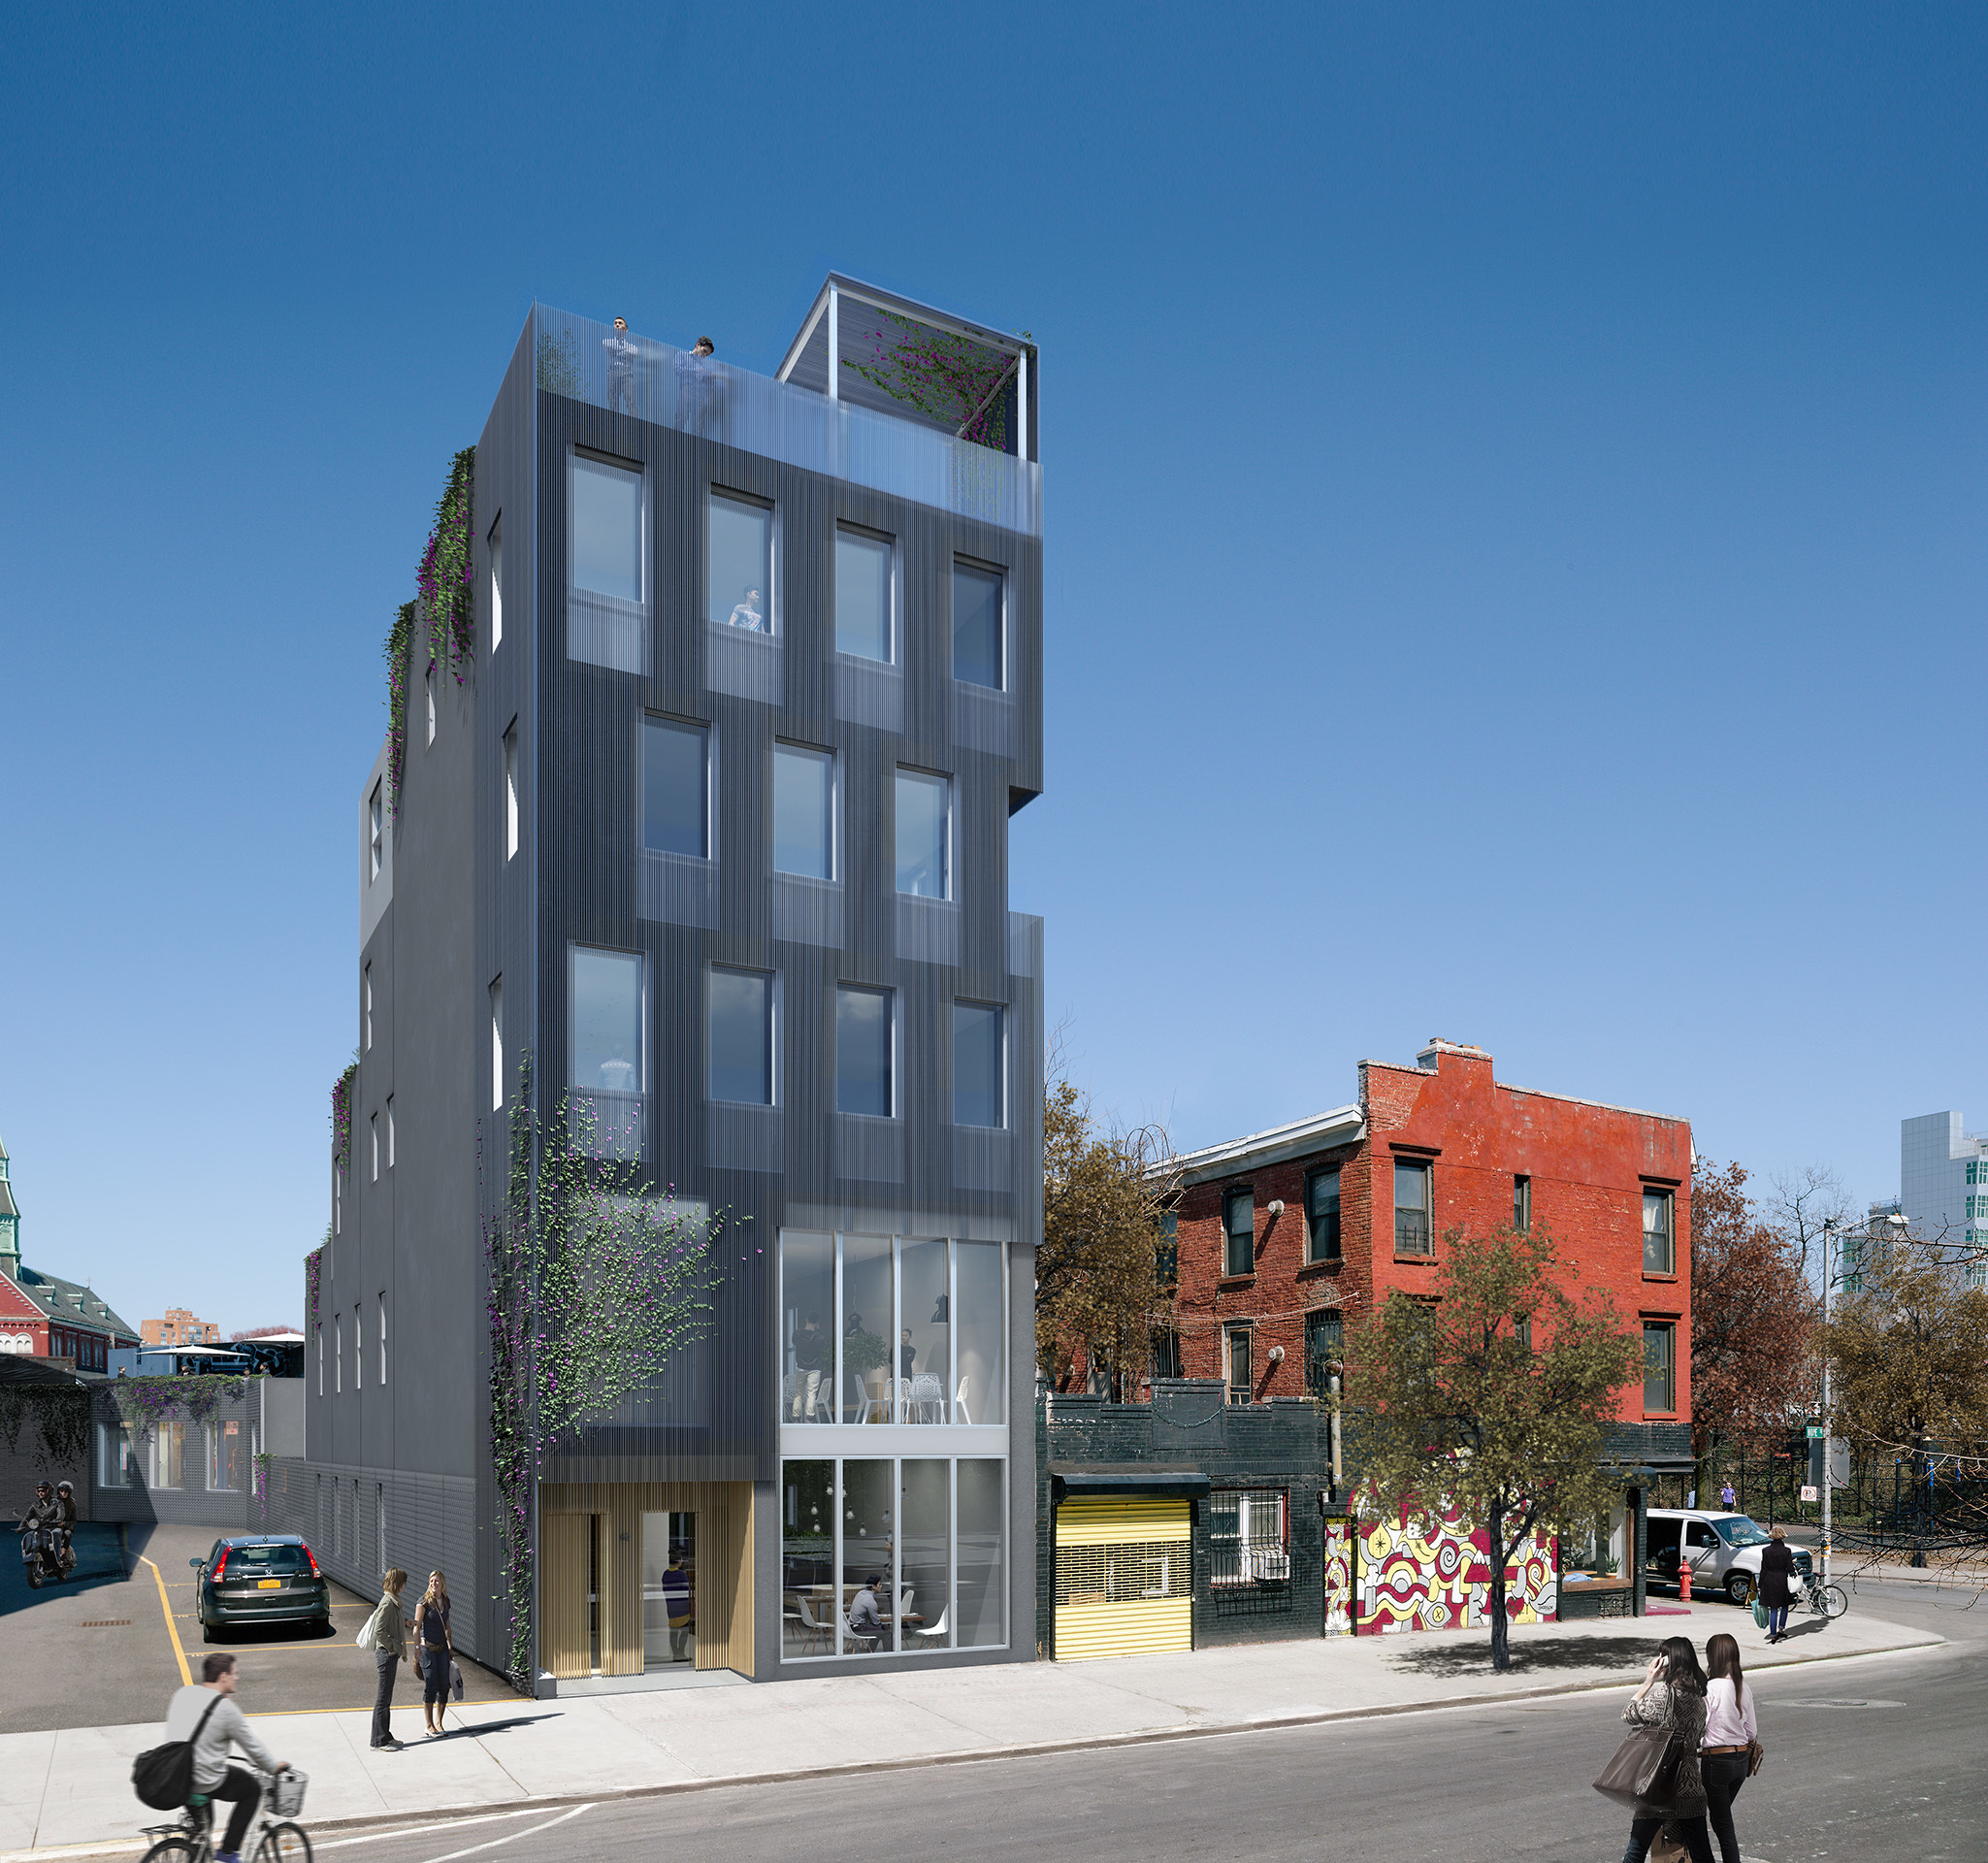 69 Hope Street, rendering by Studio Esnal